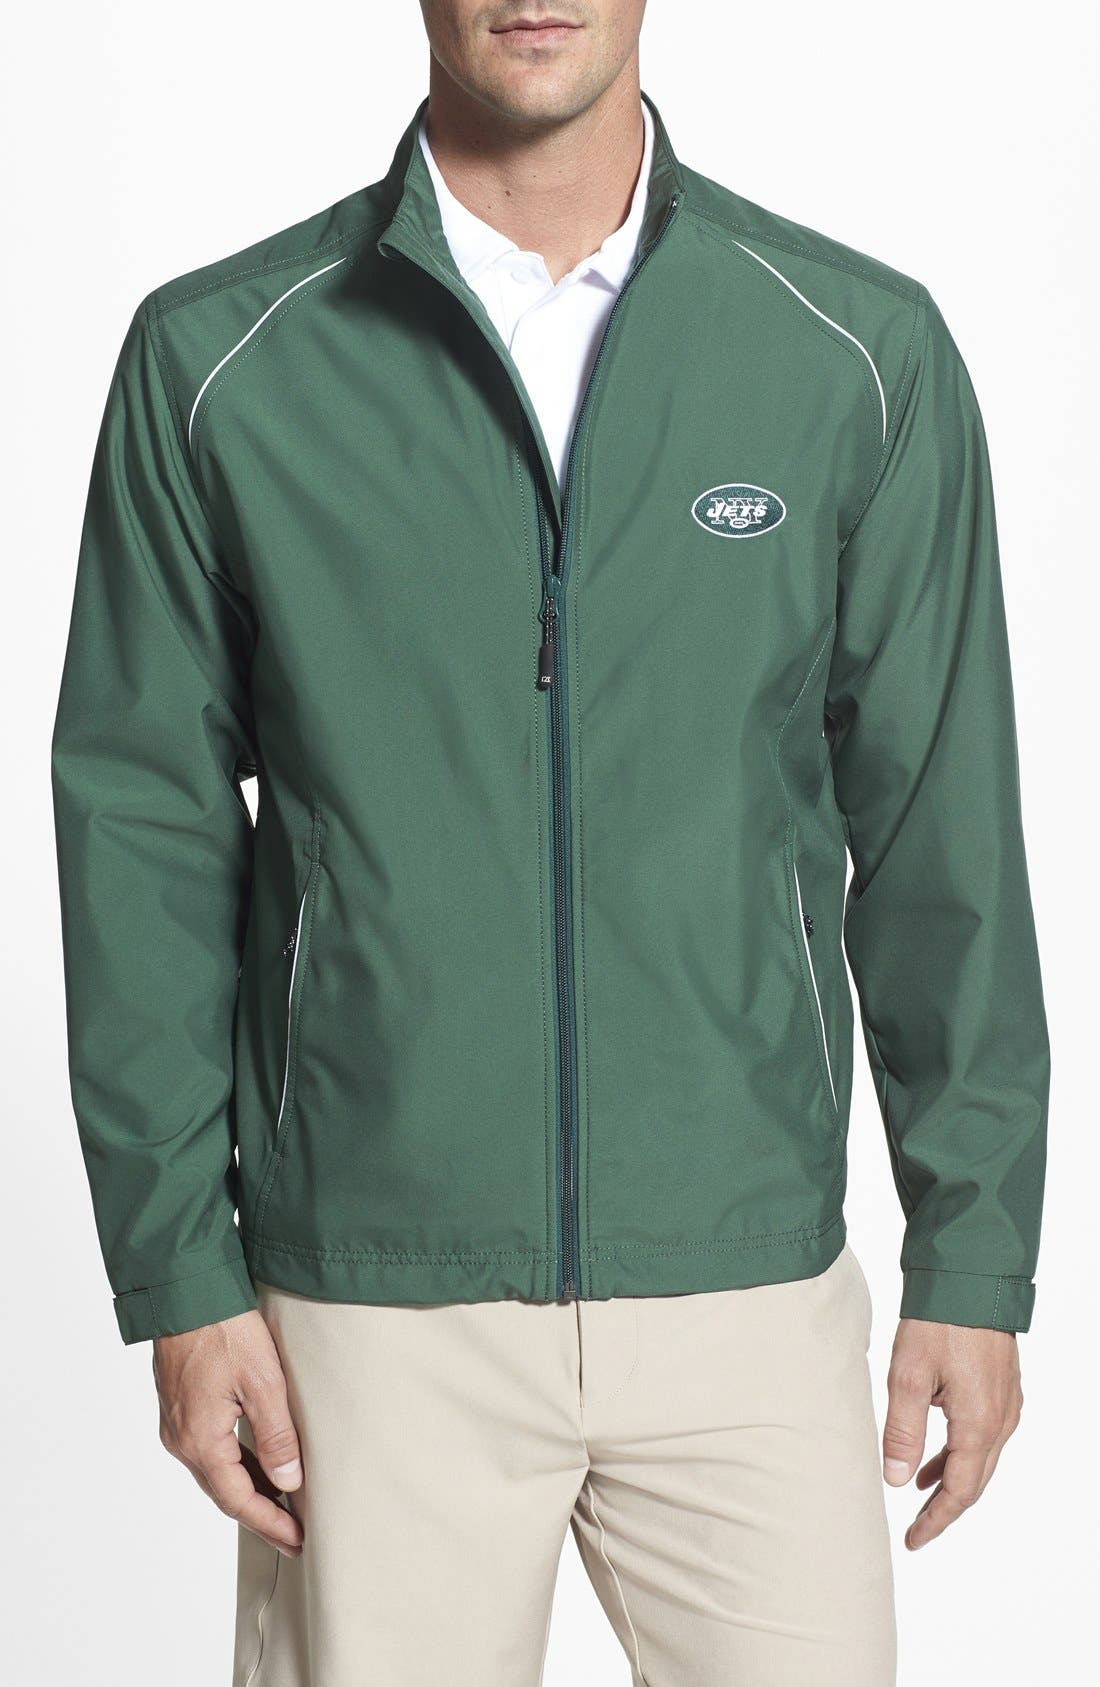 New York Jets - Beacon WeatherTec Wind & Water Resistant Jacket,                             Main thumbnail 1, color,                             377